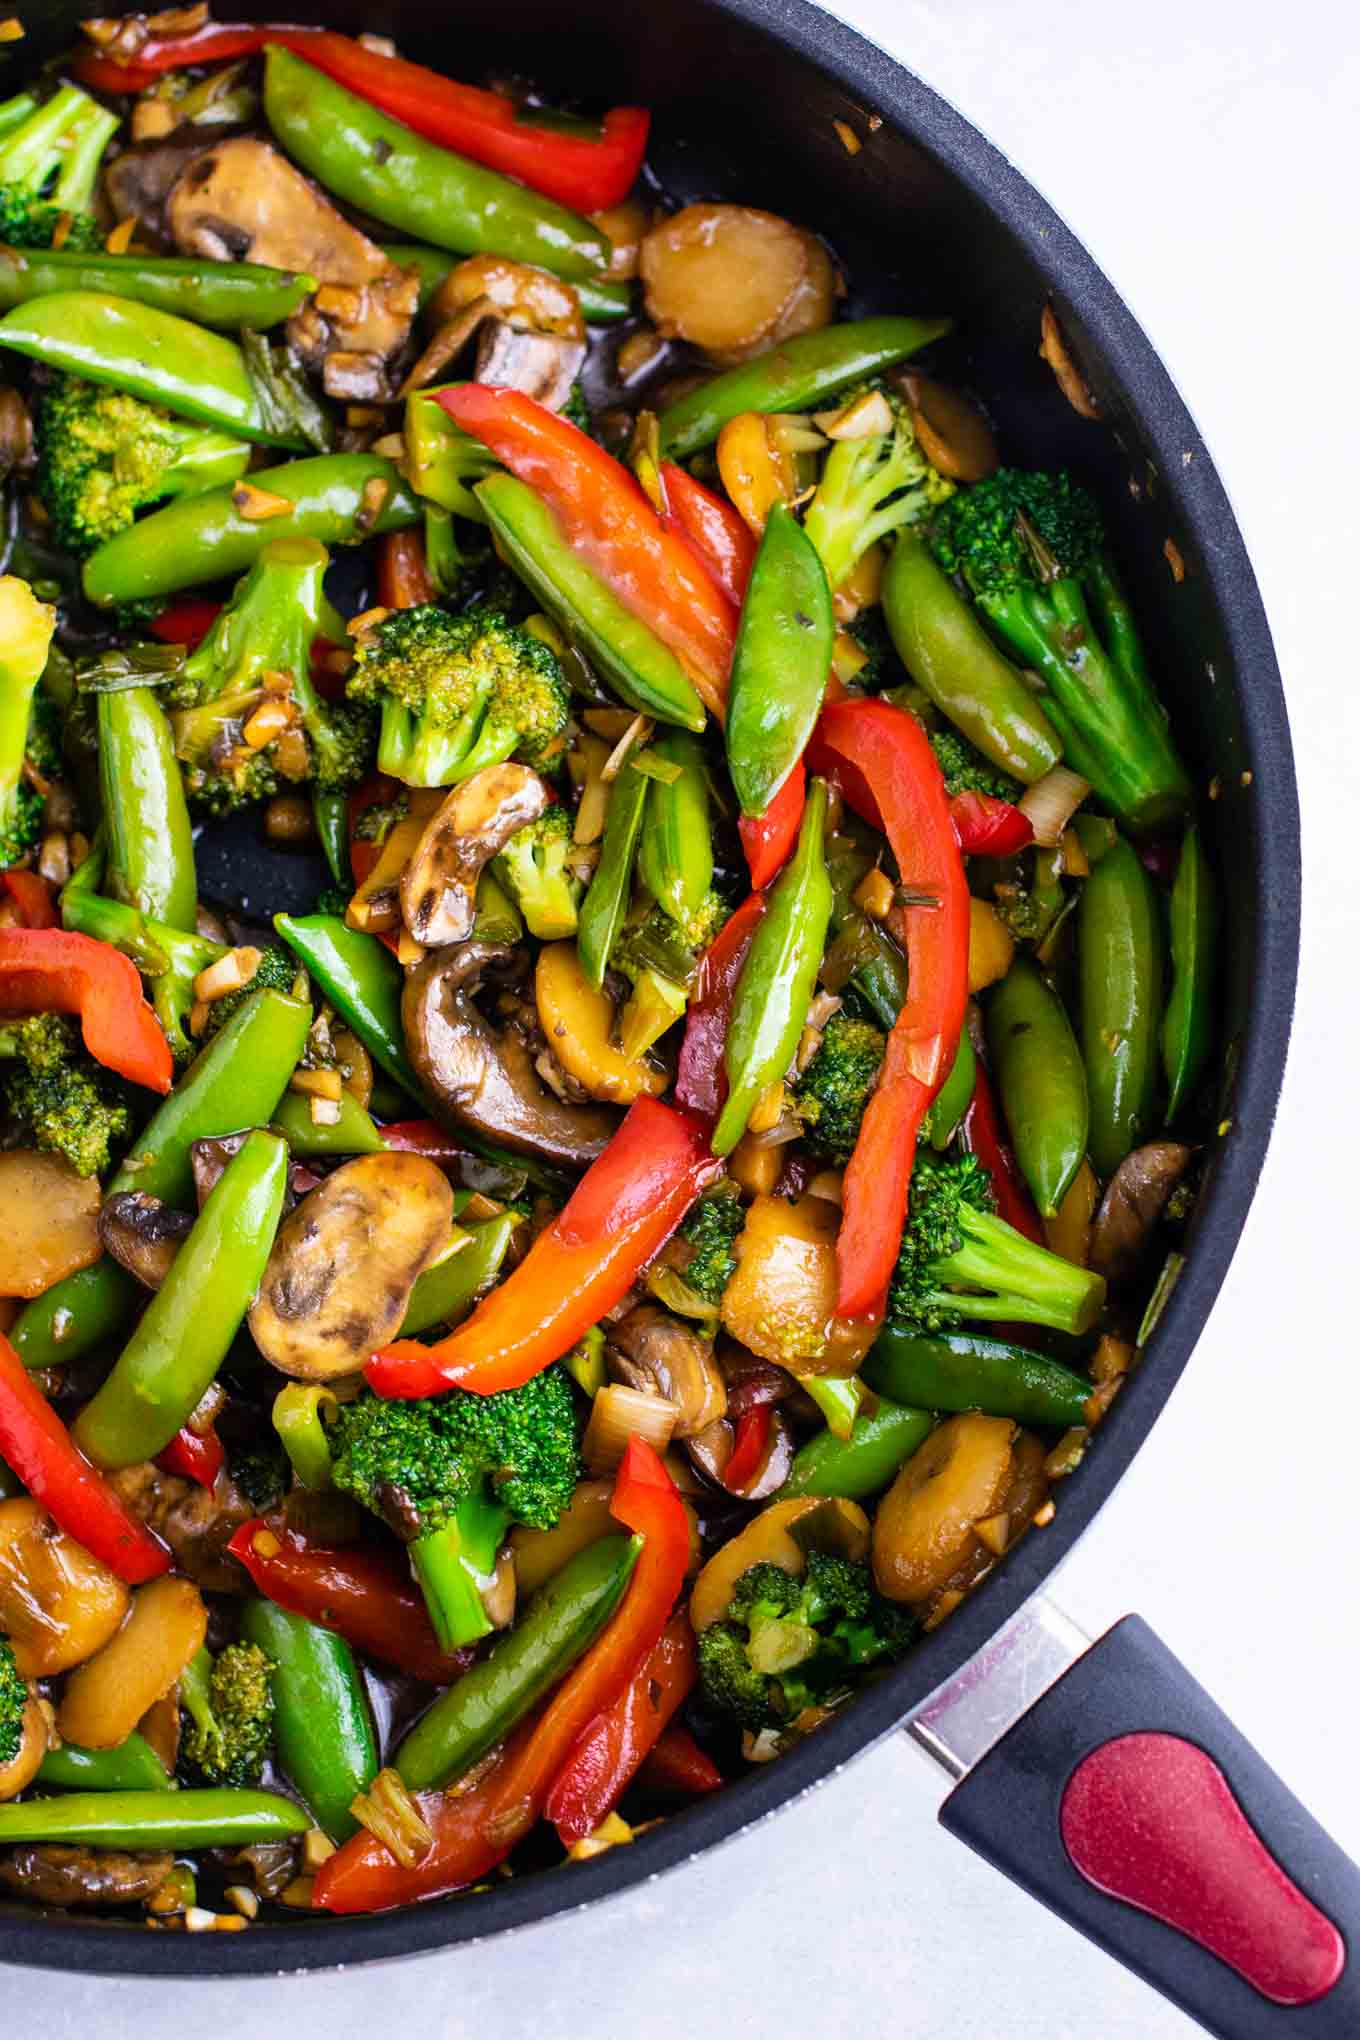 Stir fry vegetables recipe – with homemade stir fry sauce